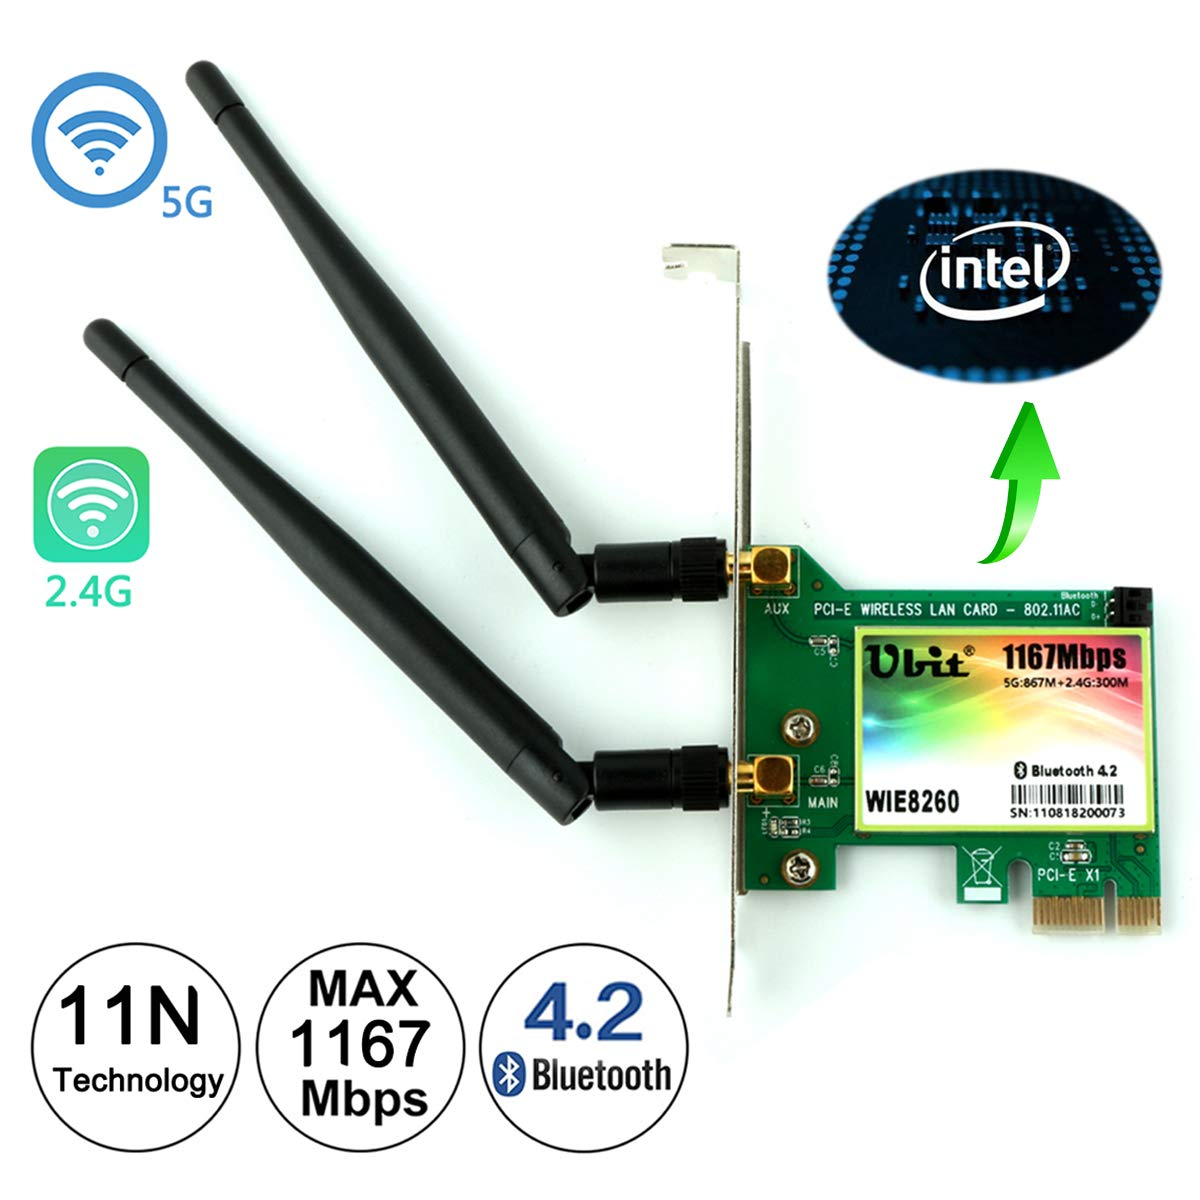 WiFi Card AC 1200Mbps,Wireless Network Card,Ubit 8260 Wireless Network Card with Bluetooth 4.2 Network Server Adapter,Dual-Band 5G/2.4G,PCI-E Wireless WI-FI Adapter Network Card for PC-Shipped From US by Ubit (Image #1)